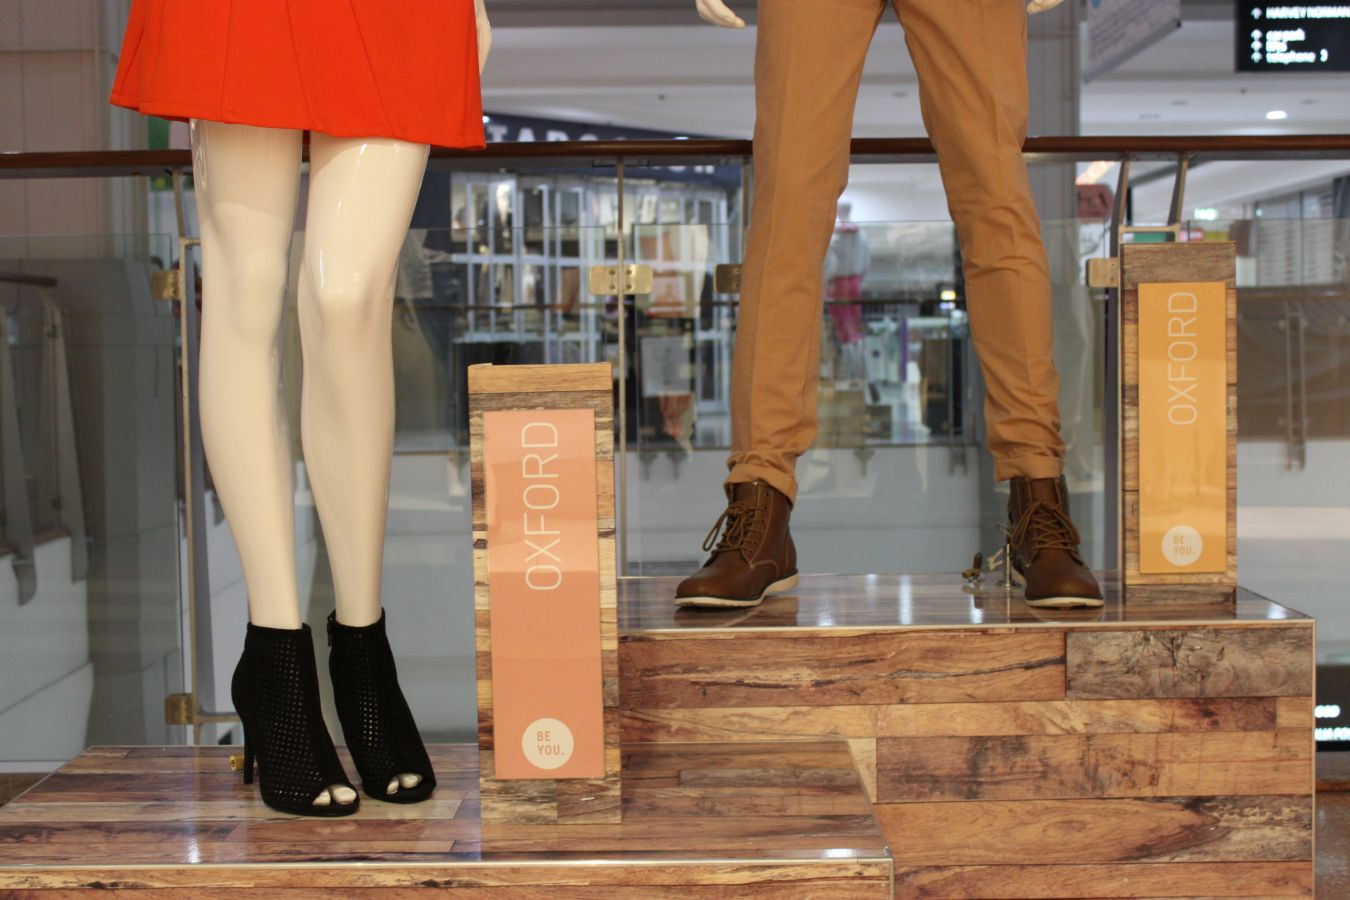 Custom design and build Mannequin display plinths